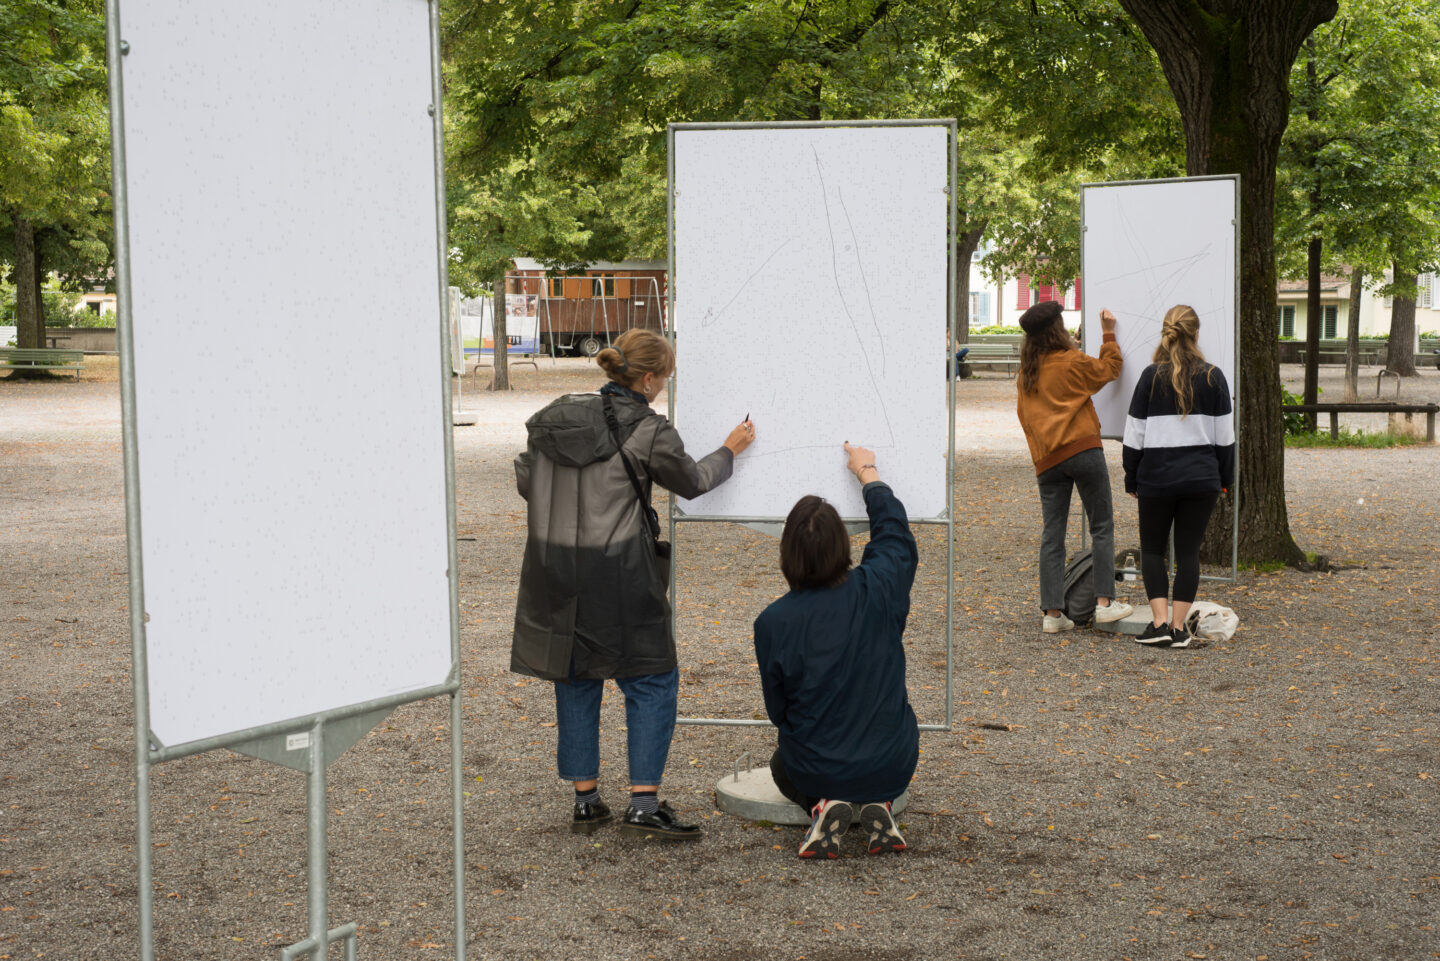 Exhibition View Groupshow «Gasträume 2020; view on Fiona Könz and Gregor Vogel, Connecting Dots, 2020» at Public Art in Zurich, Zurich, 2020 / Photo: © Taiyo Onorate & Nico Krebs / AG KiöR Stadt Zürich / Courtesy: the artists and Kein Museum, Zurich